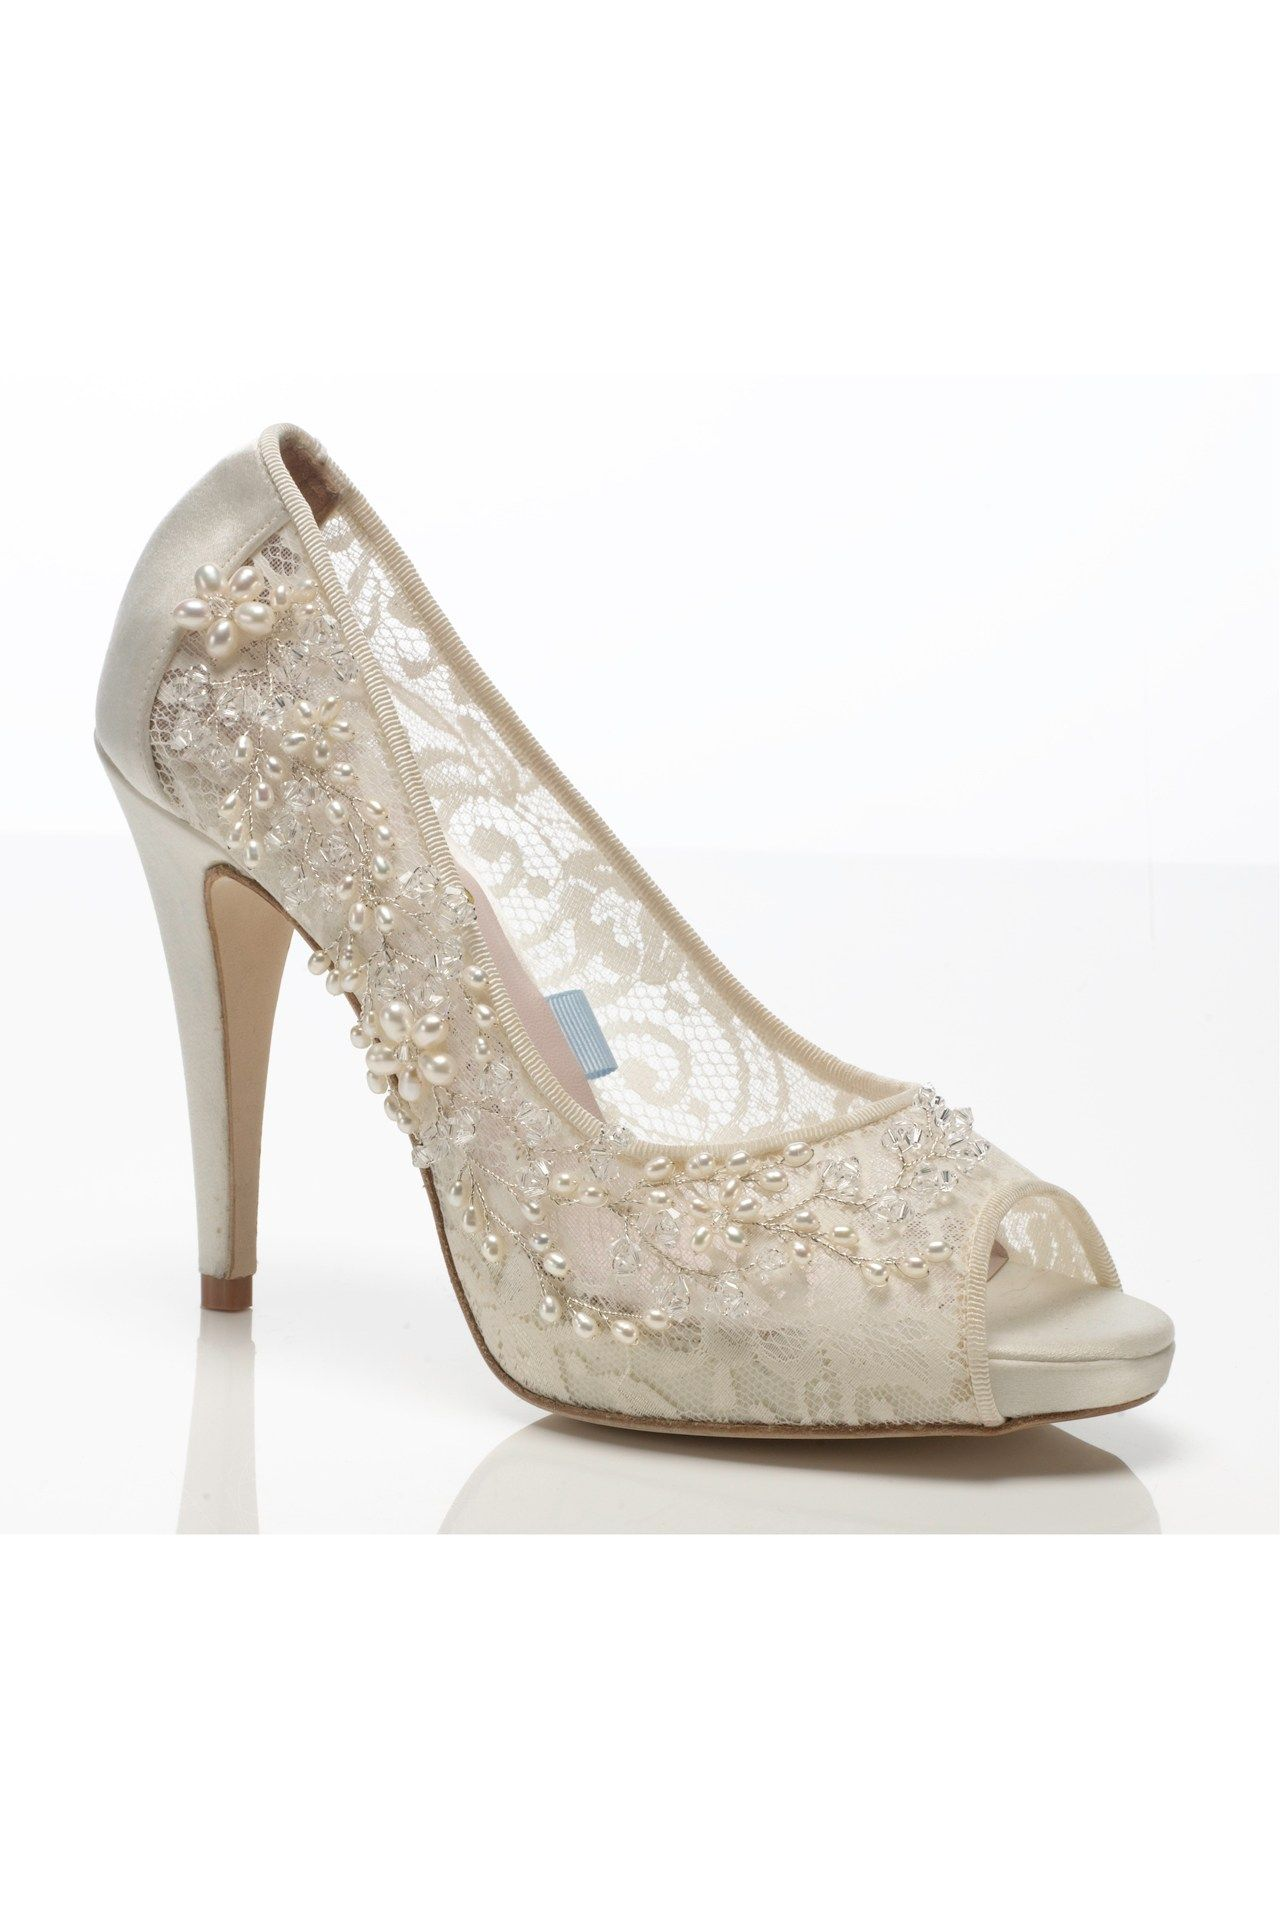 Best Wedding Shoes - Latest Bridal Shoes   Styles (BridesMagazine.co.uk)  (BridesMagazine.co.uk) 636eb782ec7a